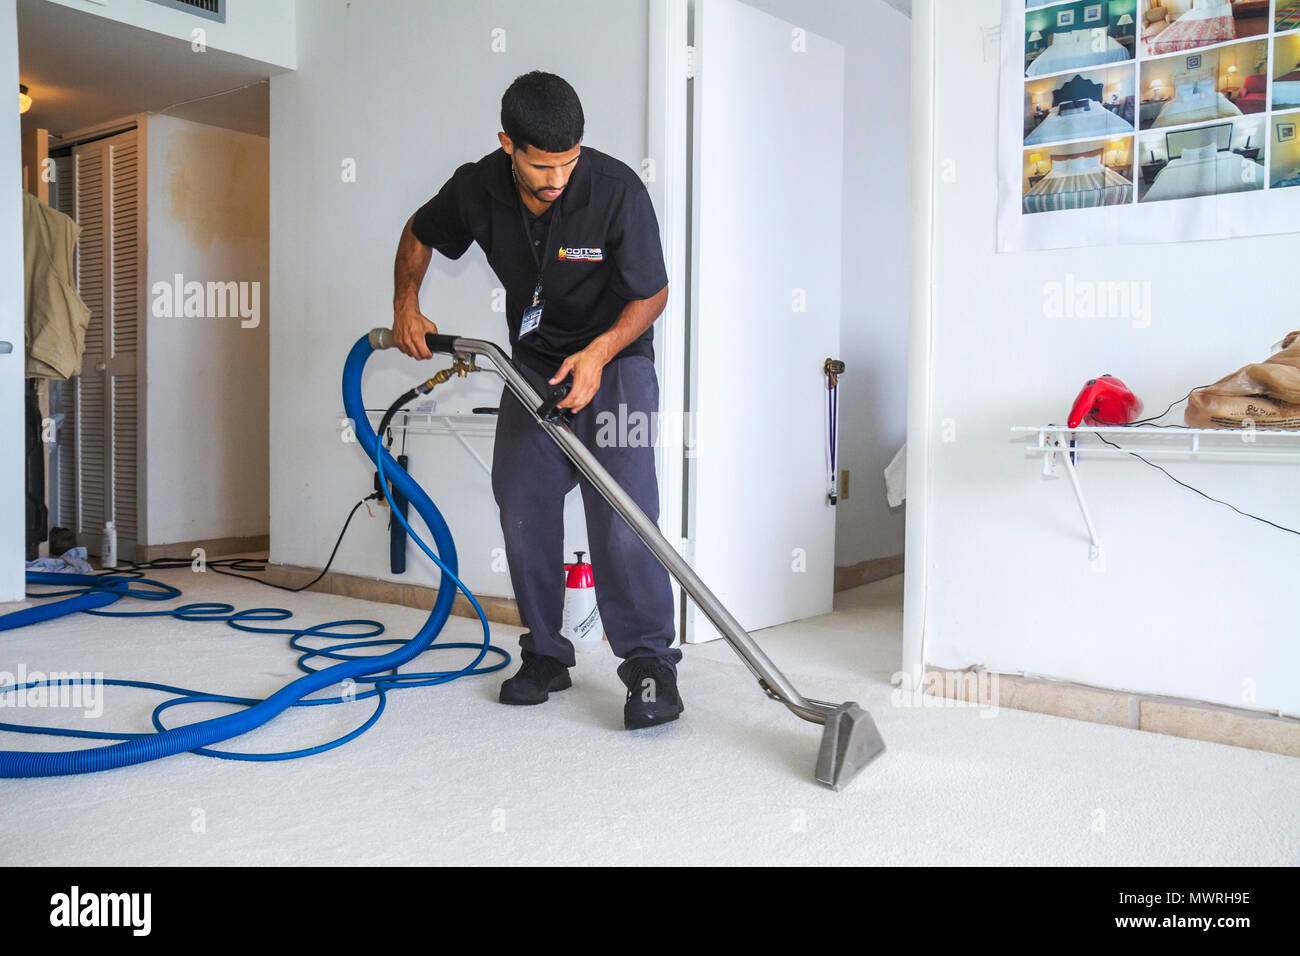 sofa cleaning miami beach black friday 2018 deals carpet cleaner stock photos and images